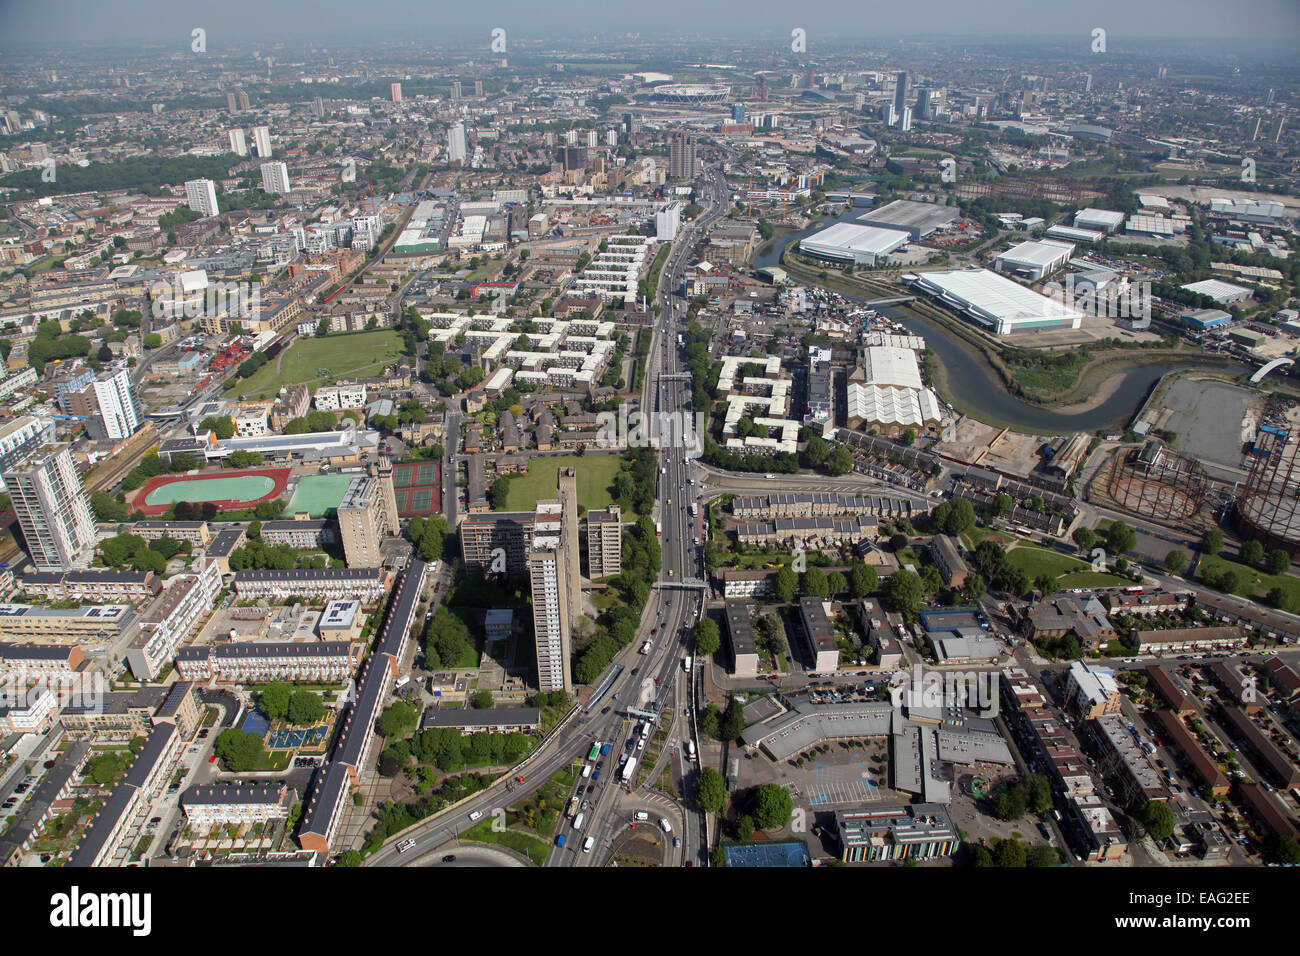 aerial view looking north up the A12 main road in Poplar, East London - Stock Image